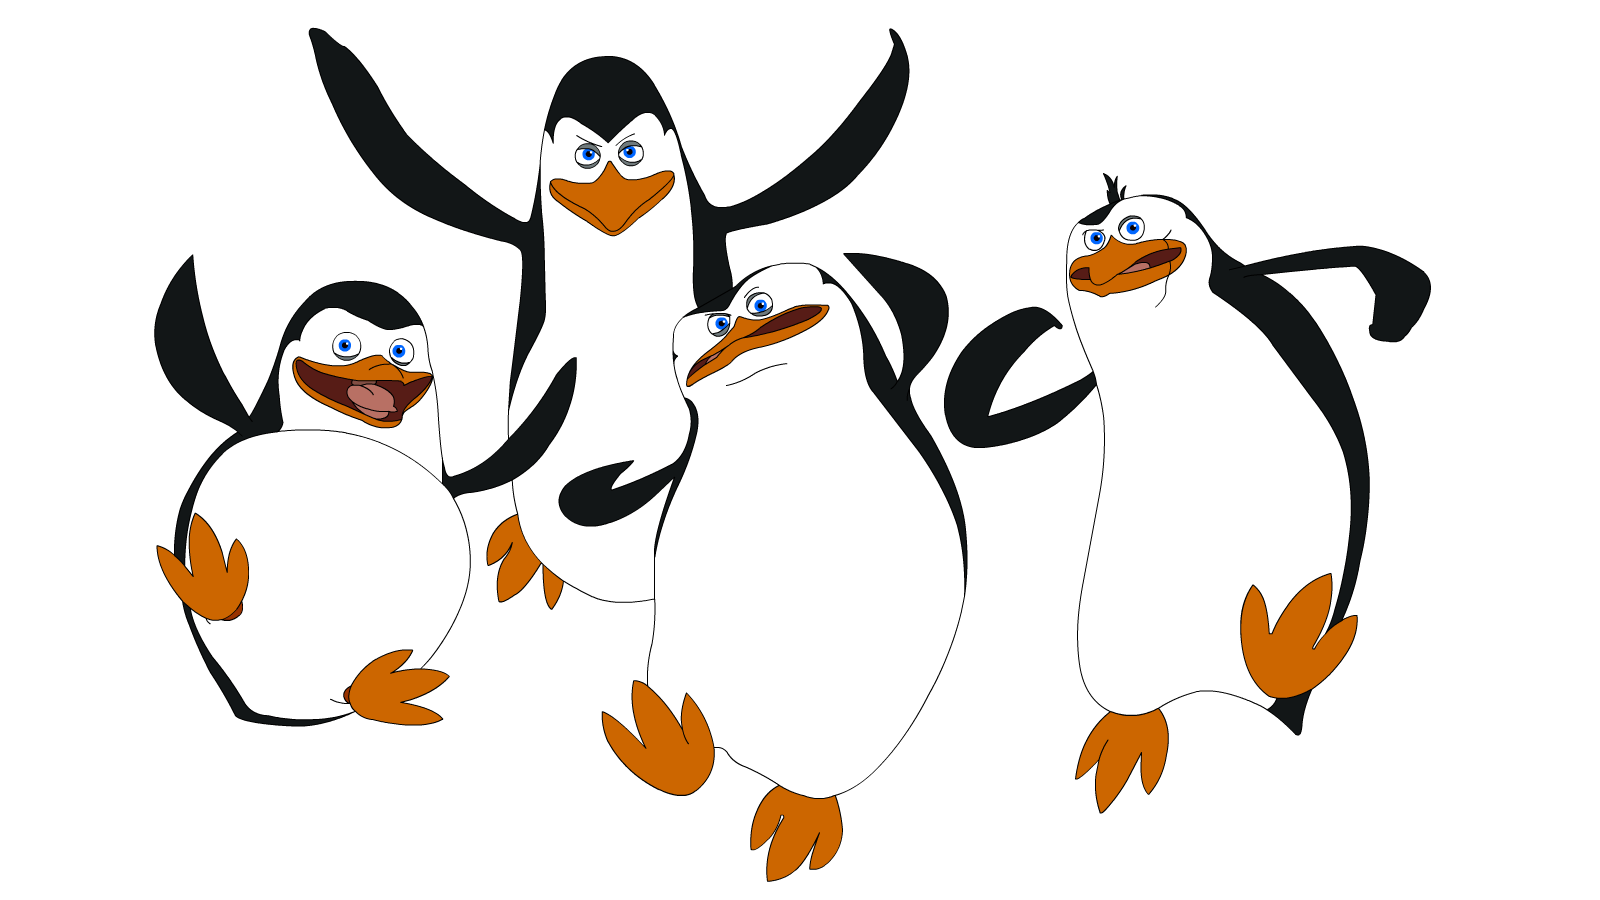 Drawing penguins logo. Of madagascar images the